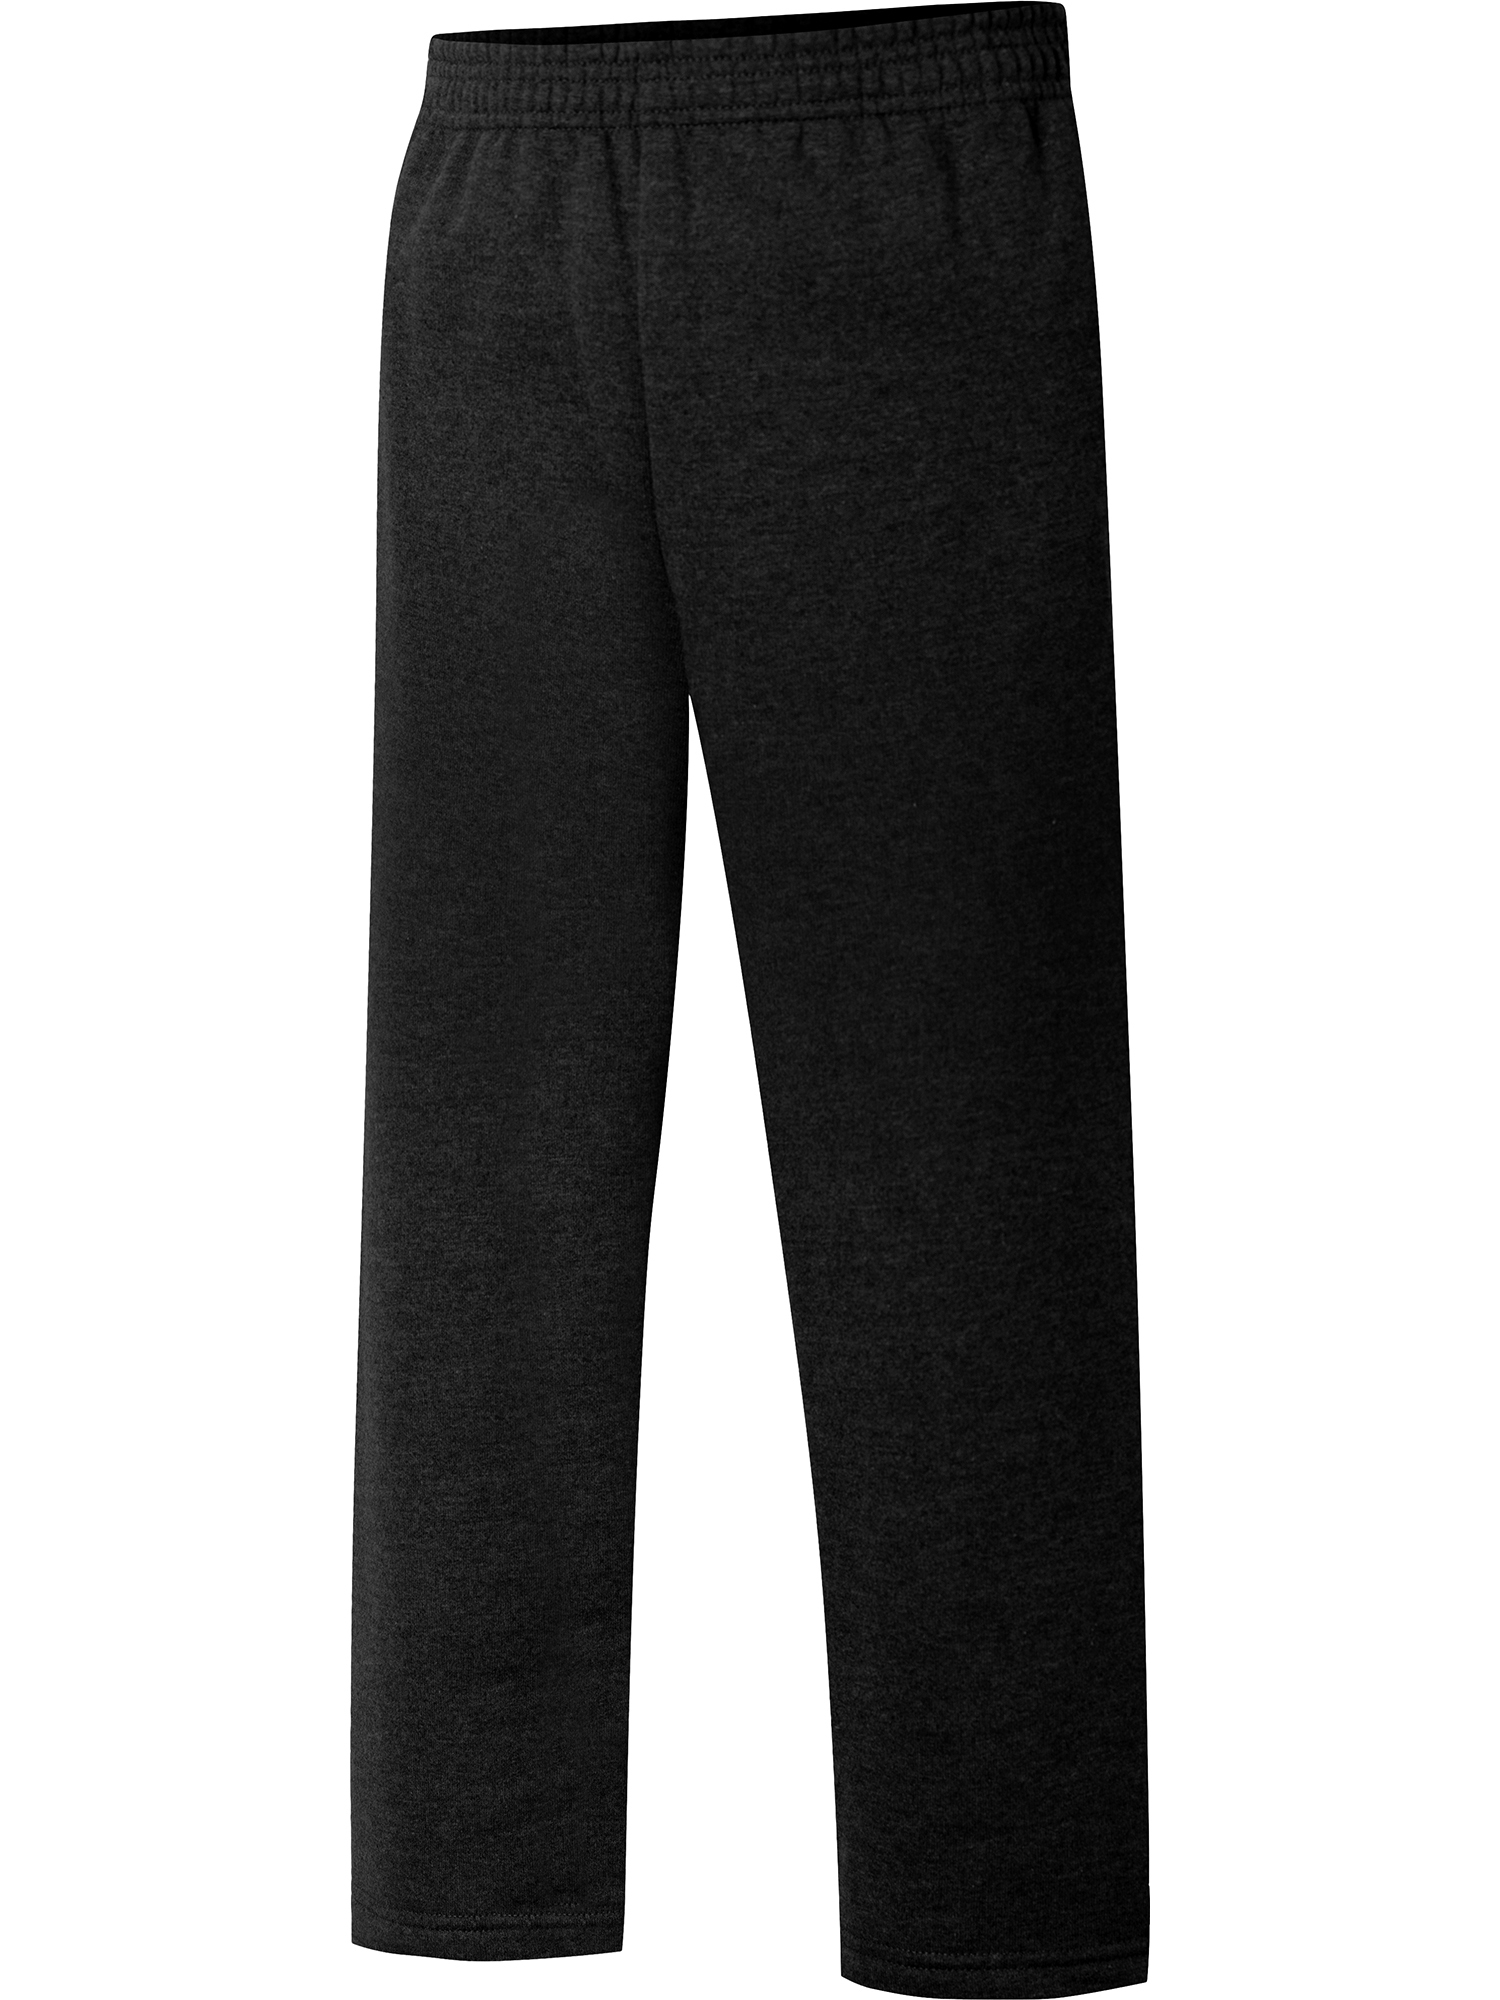 8 Medium Basic Editions Boys Open Leg Side Stripe Fleece Pants Size 4-5 XS